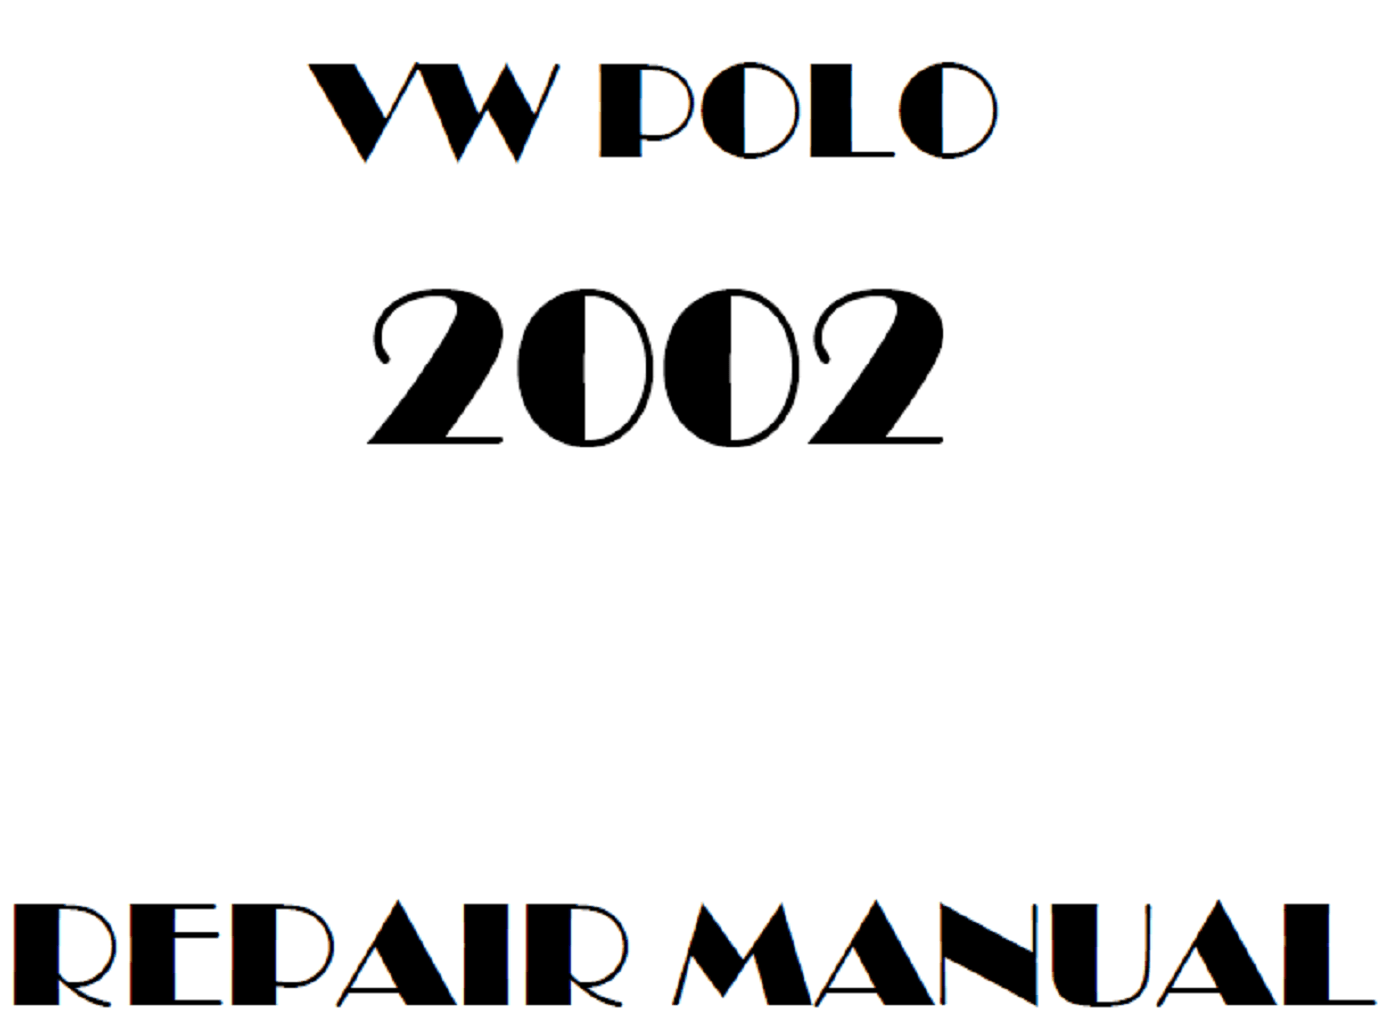 2002 Volkswagen Polo repair manual